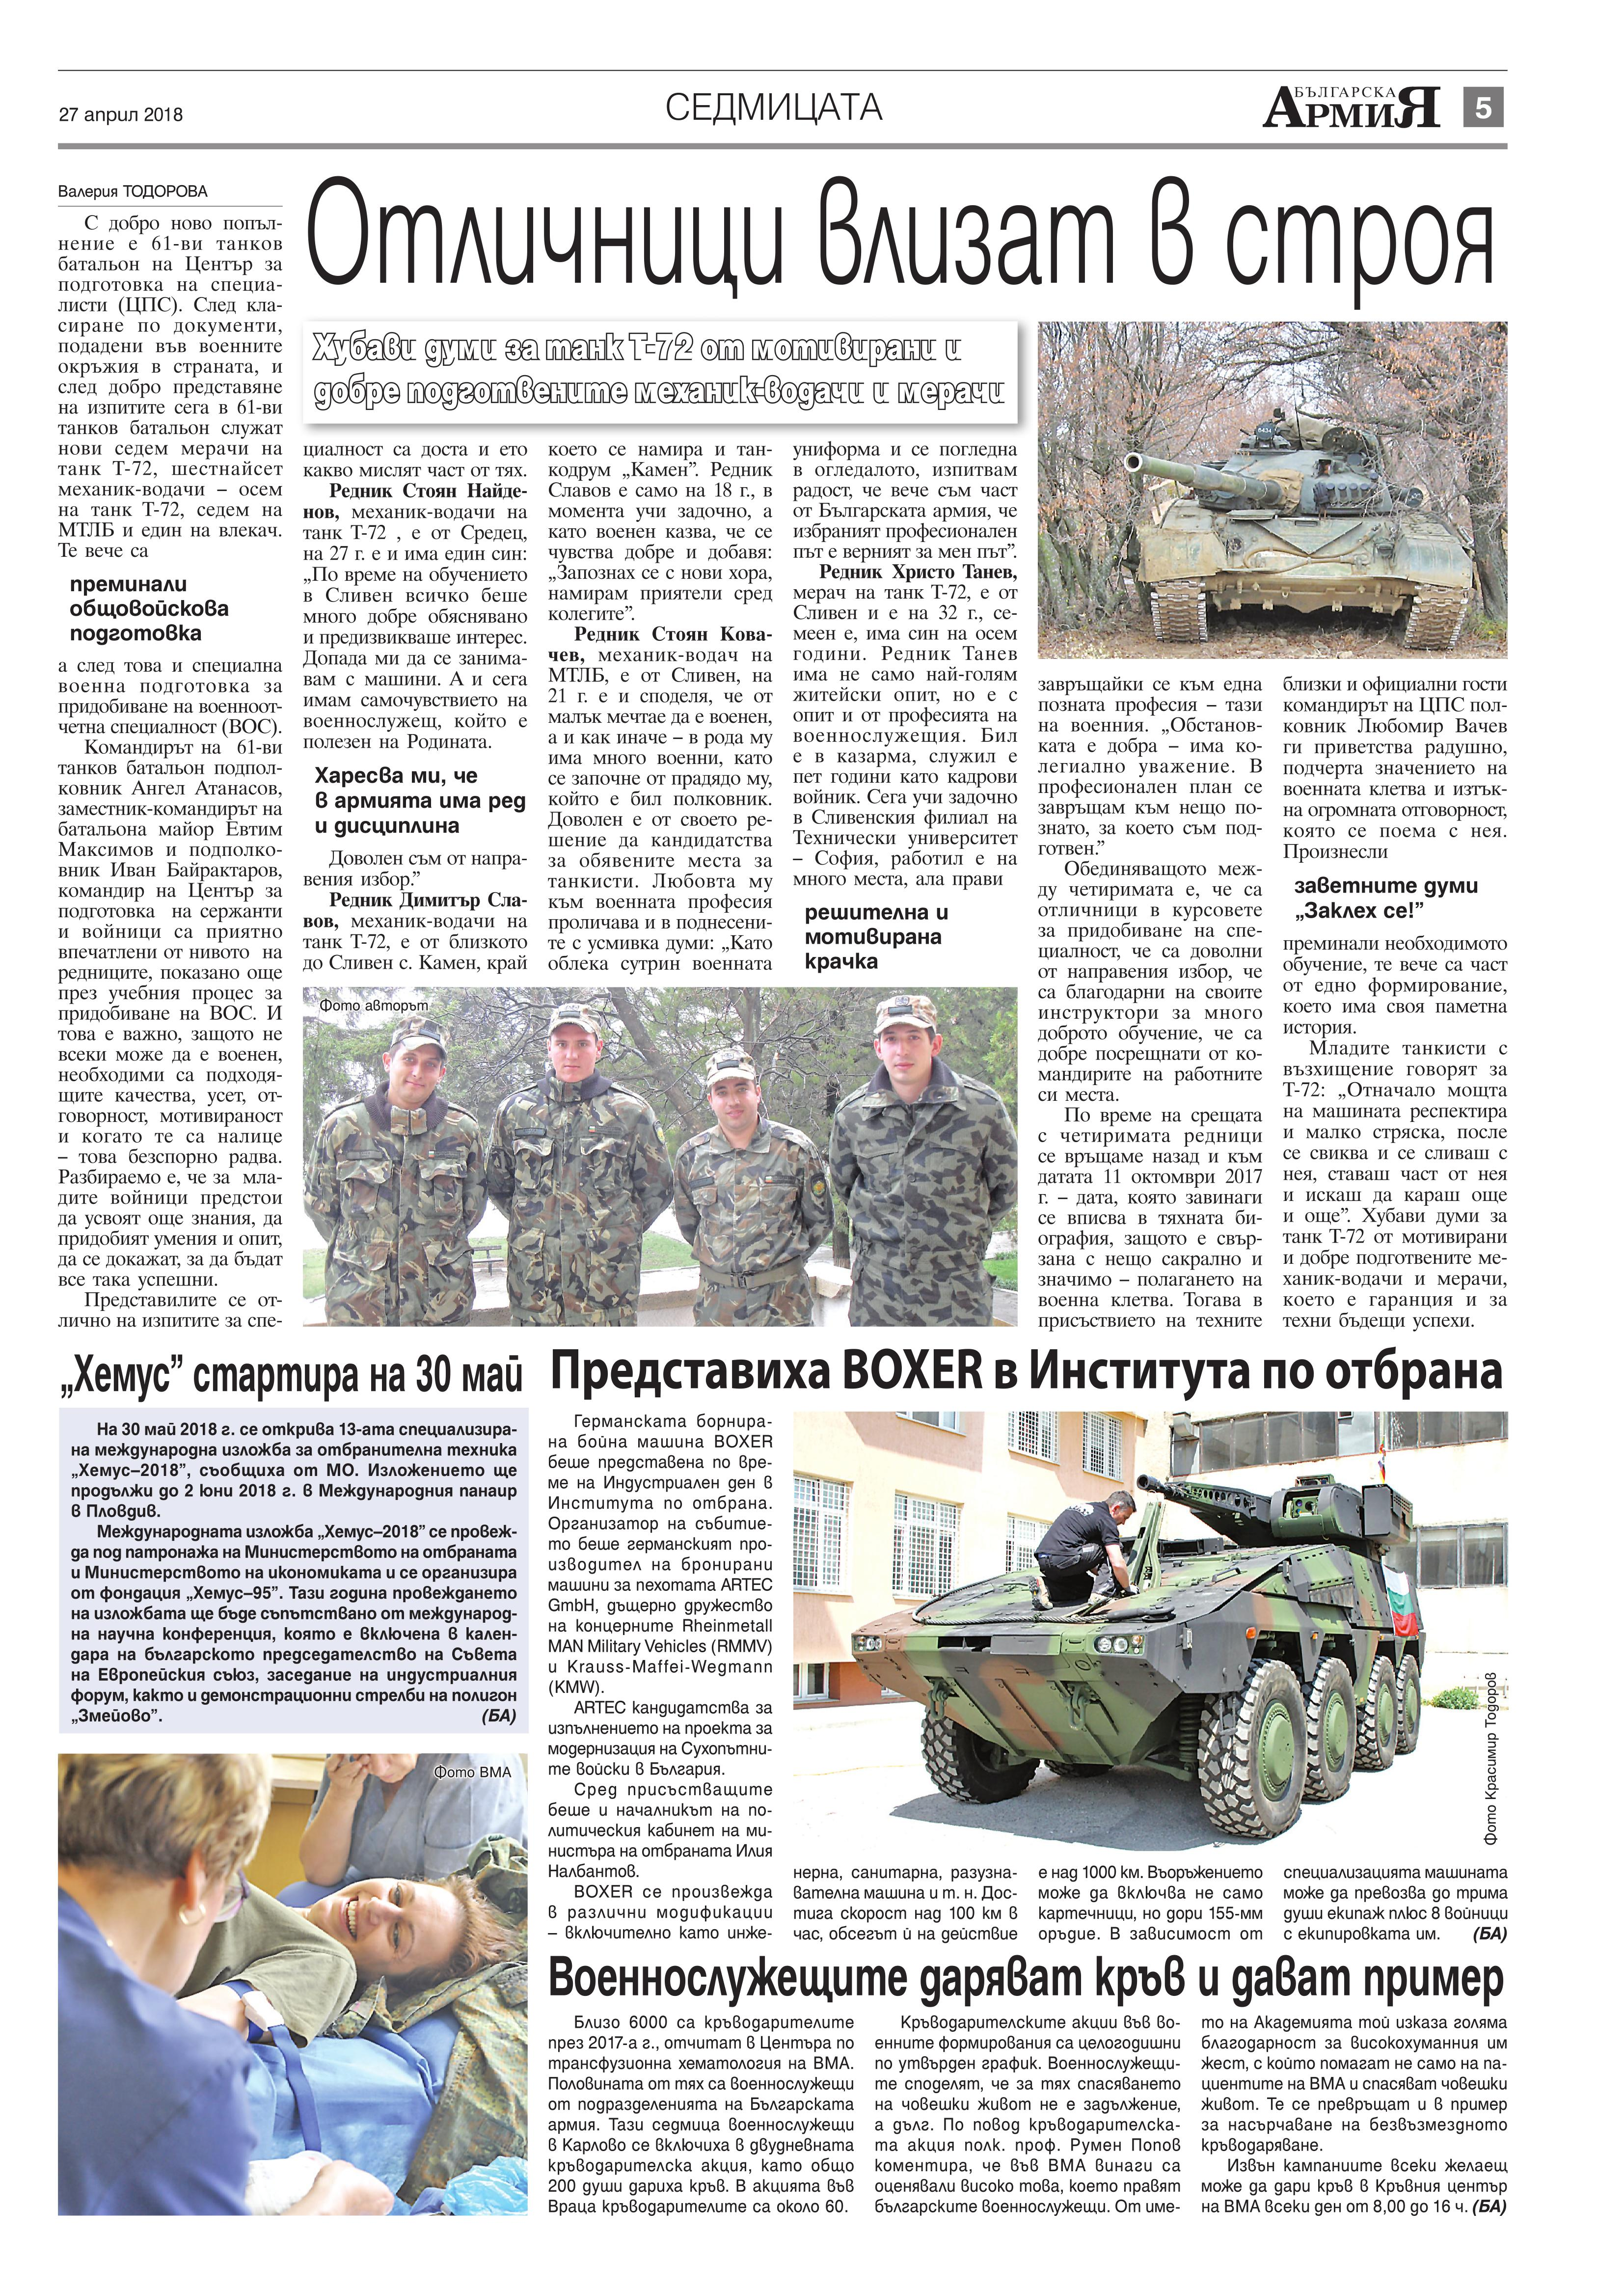 http://armymedia.bg/wp-content/uploads/2015/06/05.page1-Copy-2.jpg